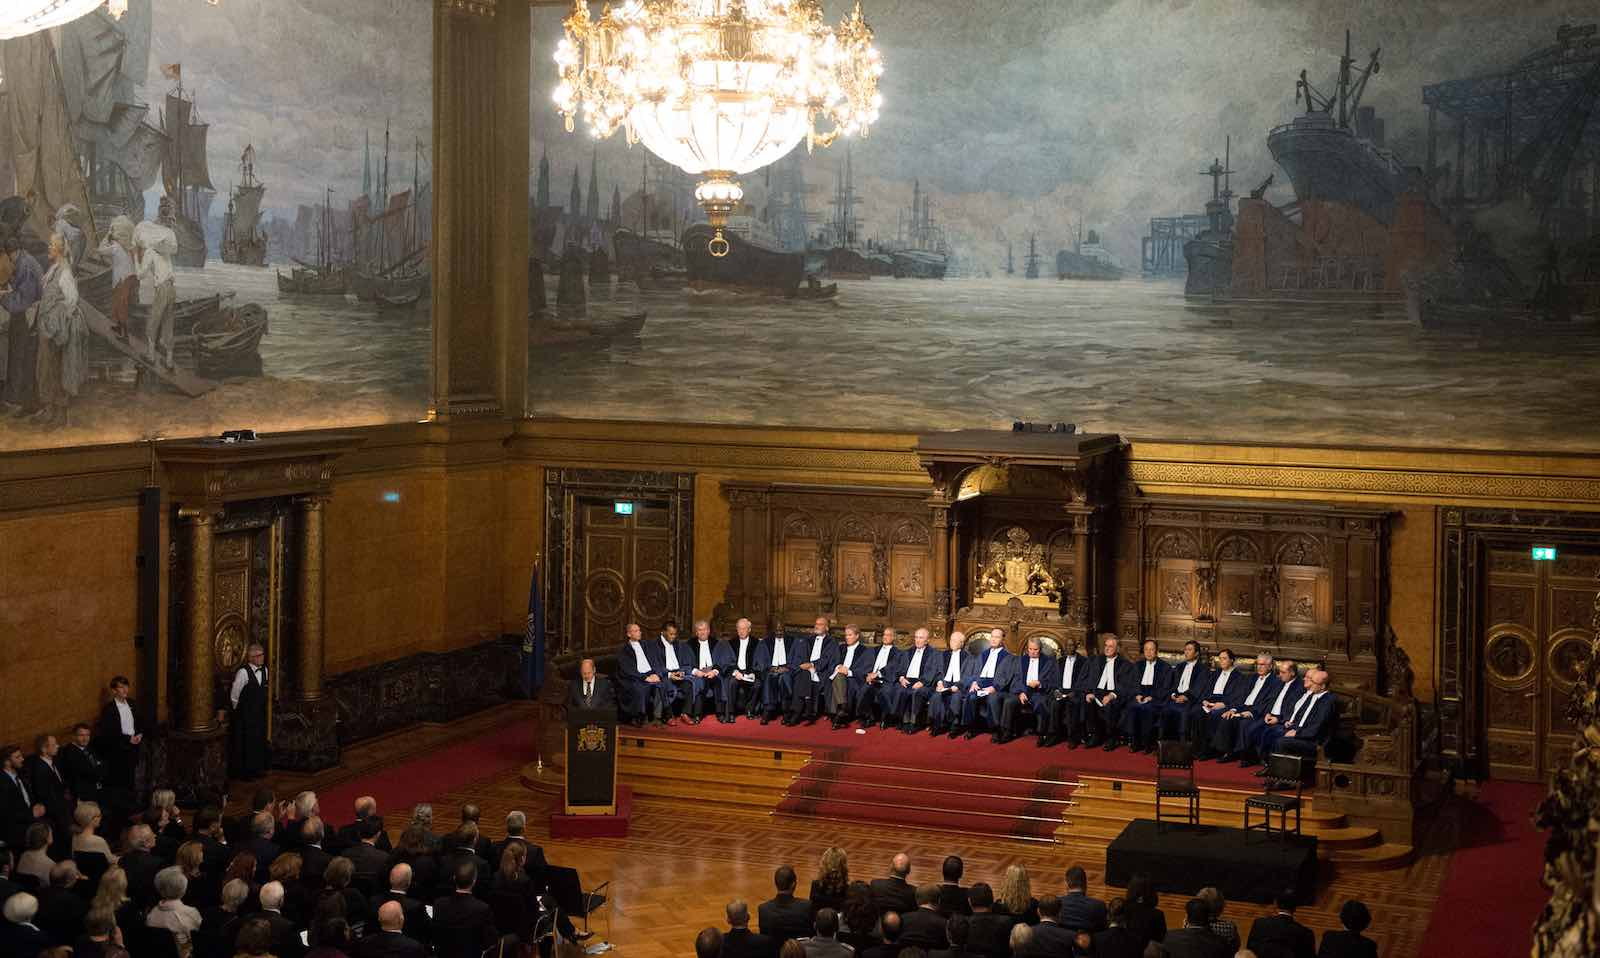 Ceremony for the 20th anniversary of the International Tribunal for the Law of the Sea in Hamburg, Germany, 7 October 2016 (Daniel Reinhardt/picture alliance via Getty Images)